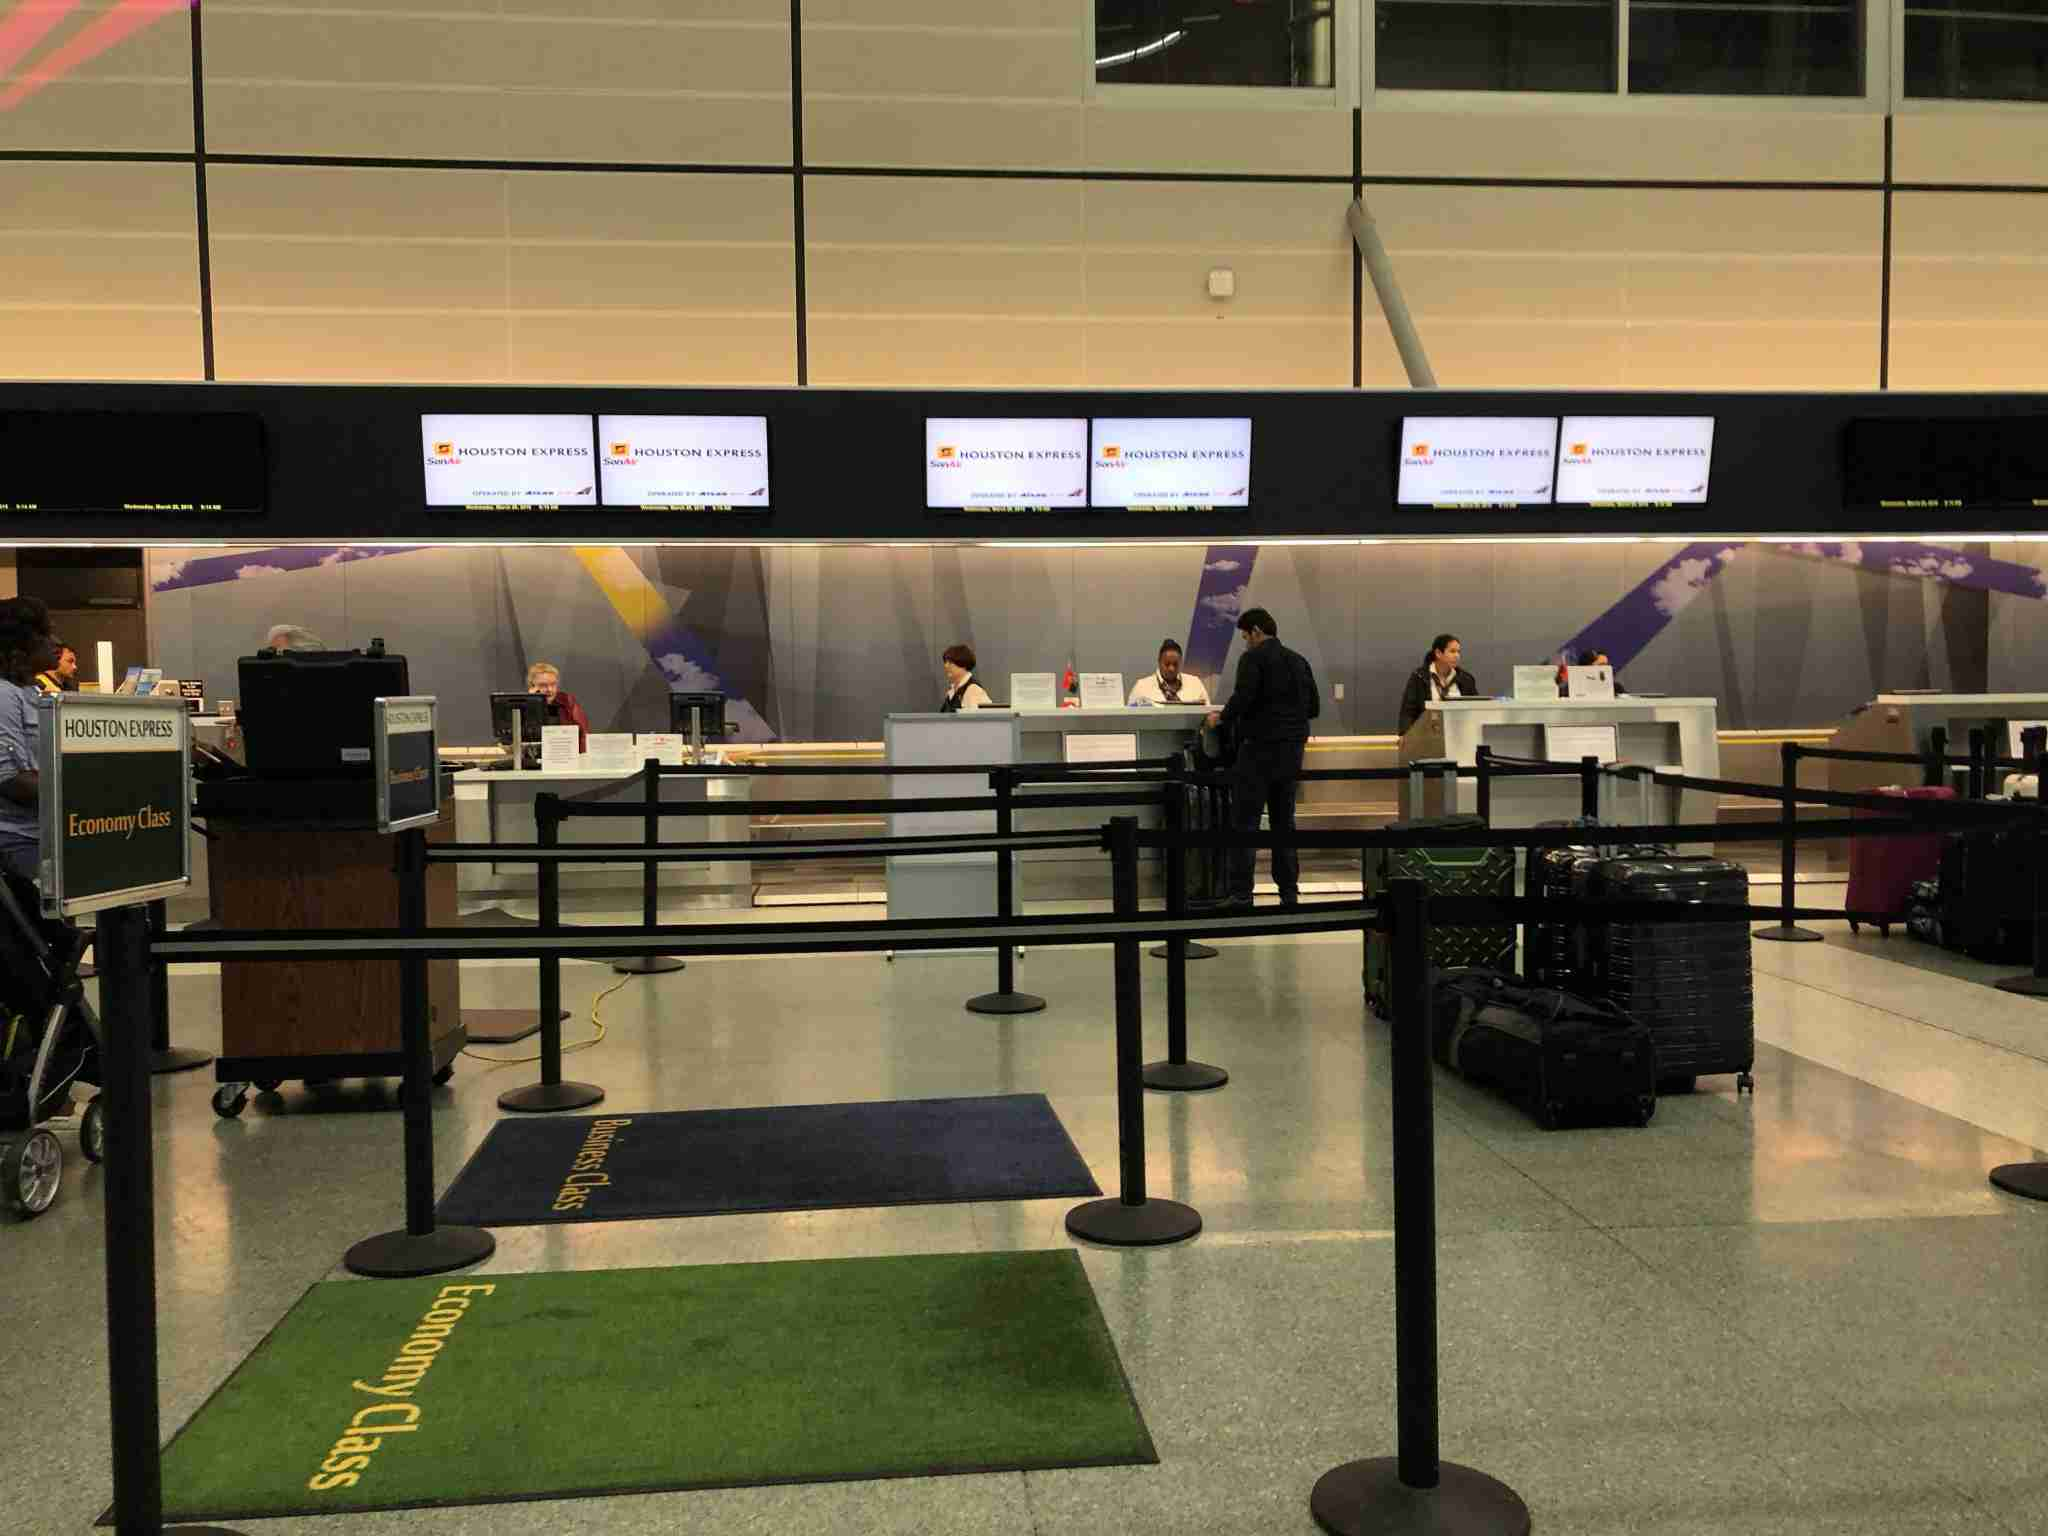 The check-in area for the Houston Express. It was pretty quiet when I checked.